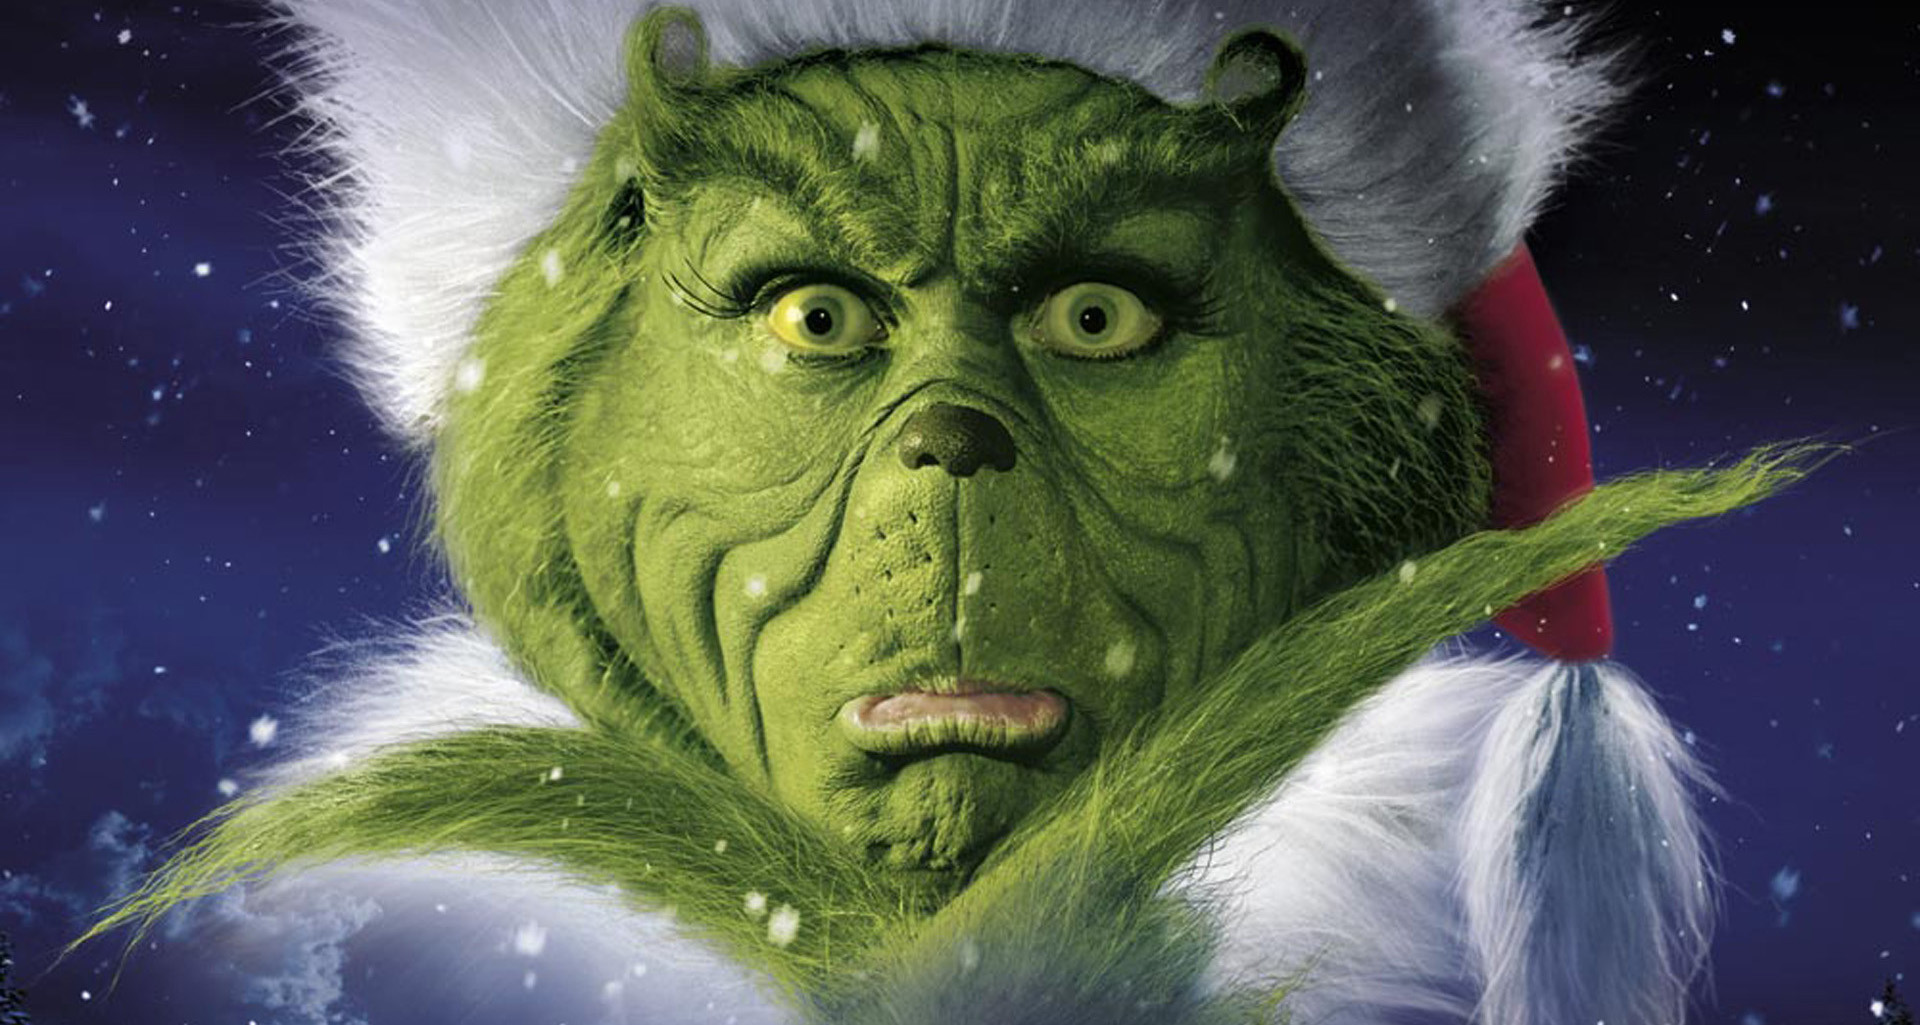 Frowning Grinch...like mom and dad?